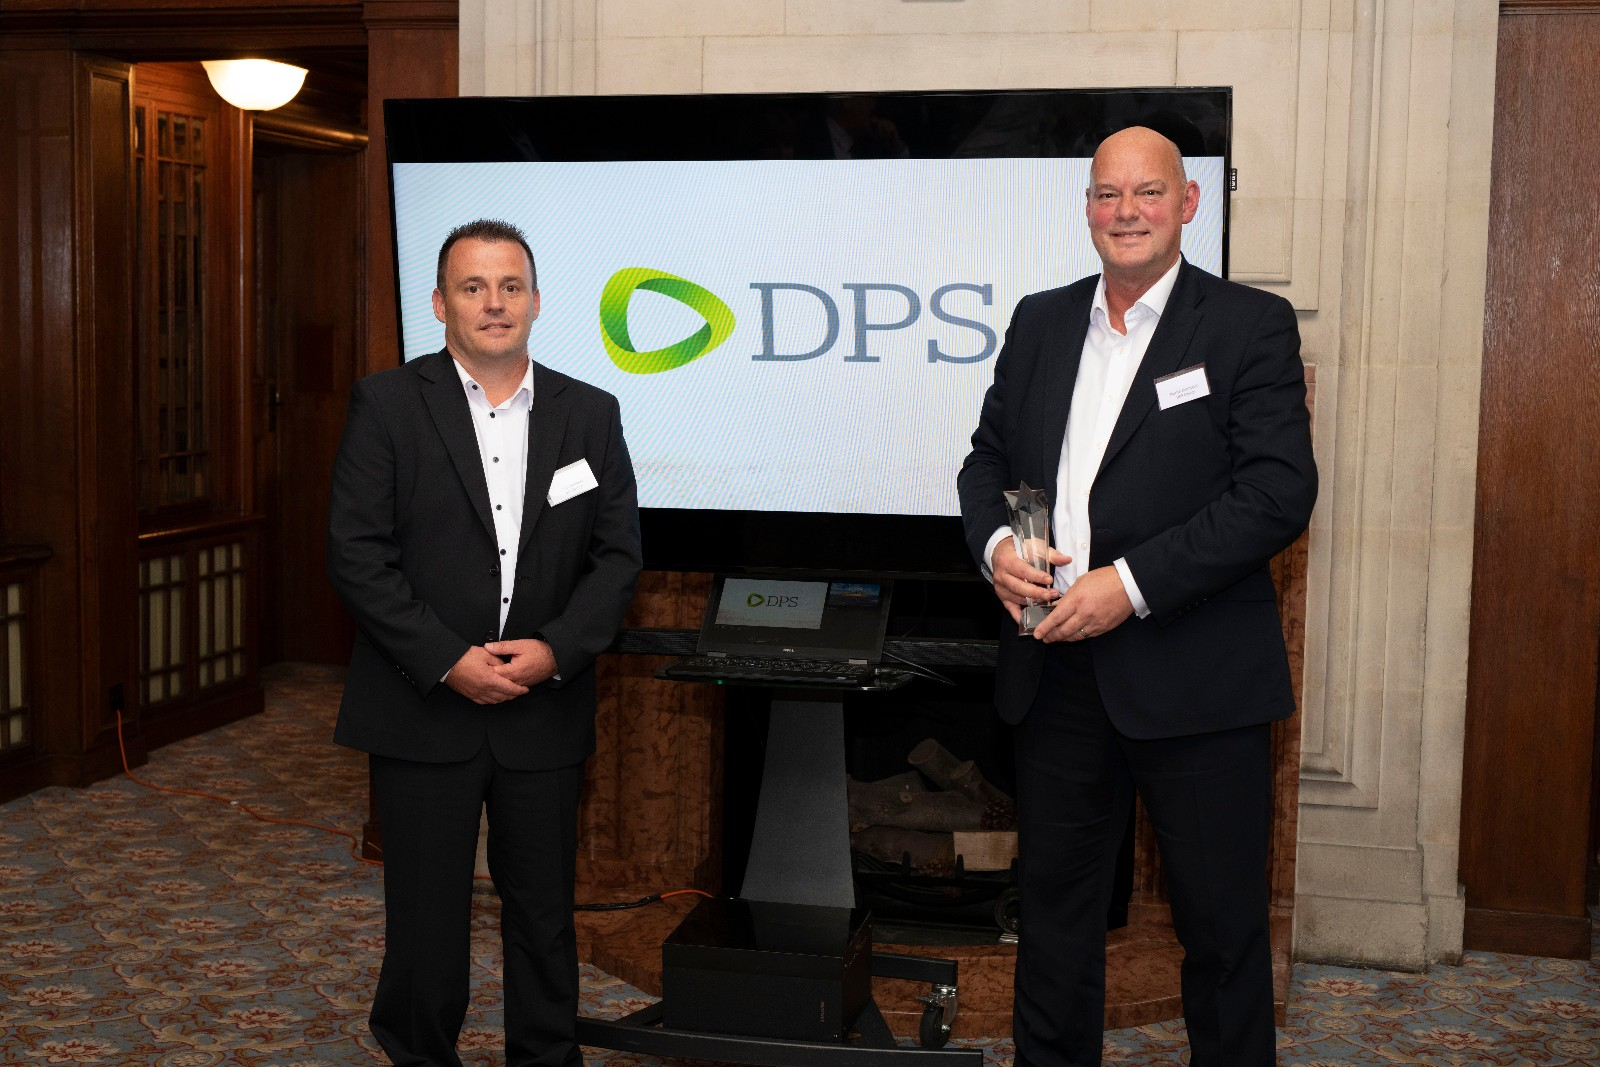 Peter Booman, Director of Contract Services, The Netherlands and Martin Bannister, Managing Director CS Europe